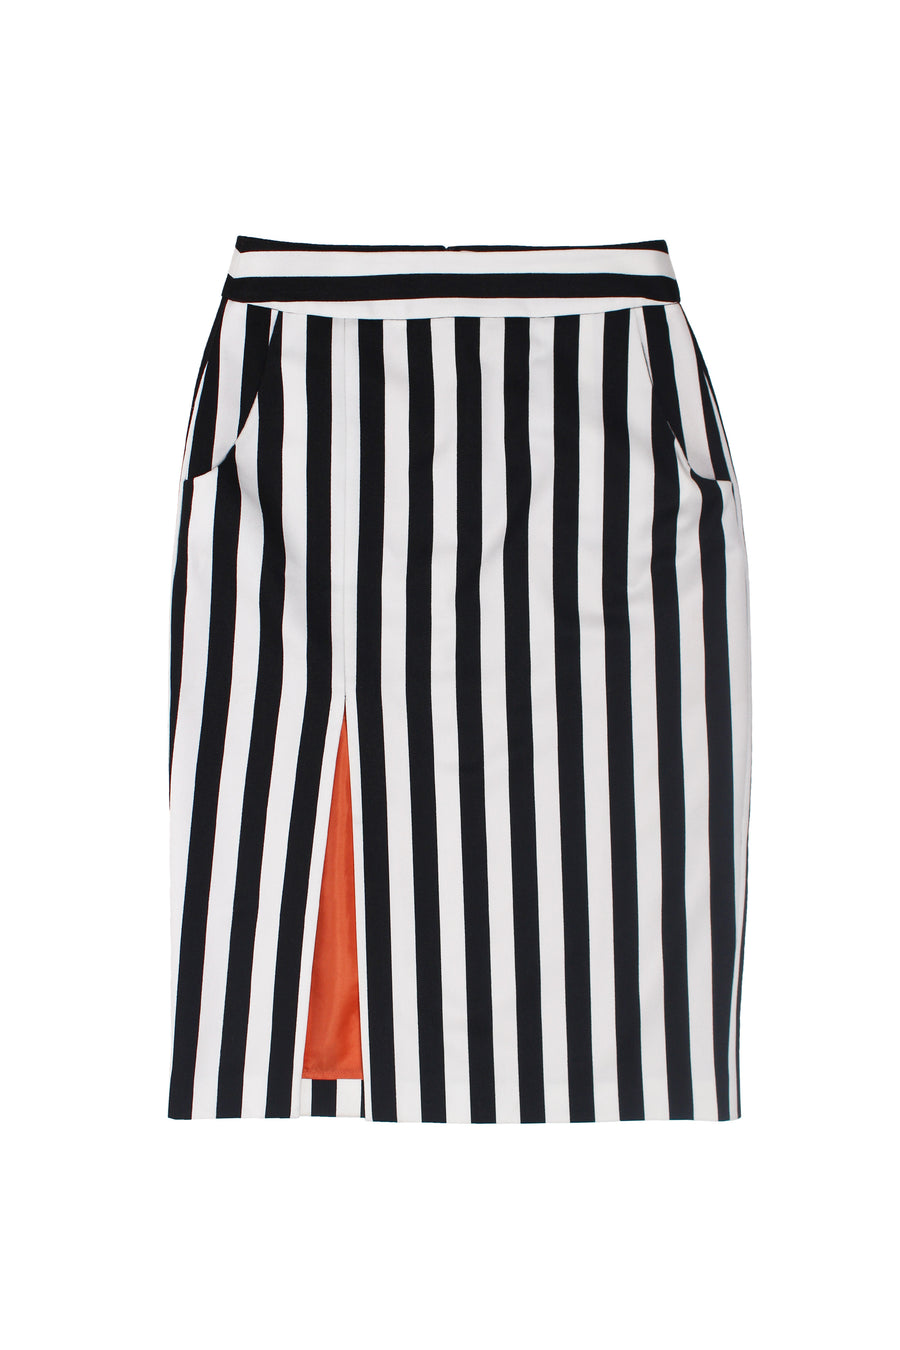 Beetle Juice Skirt-Bottoms-Christina Dienst